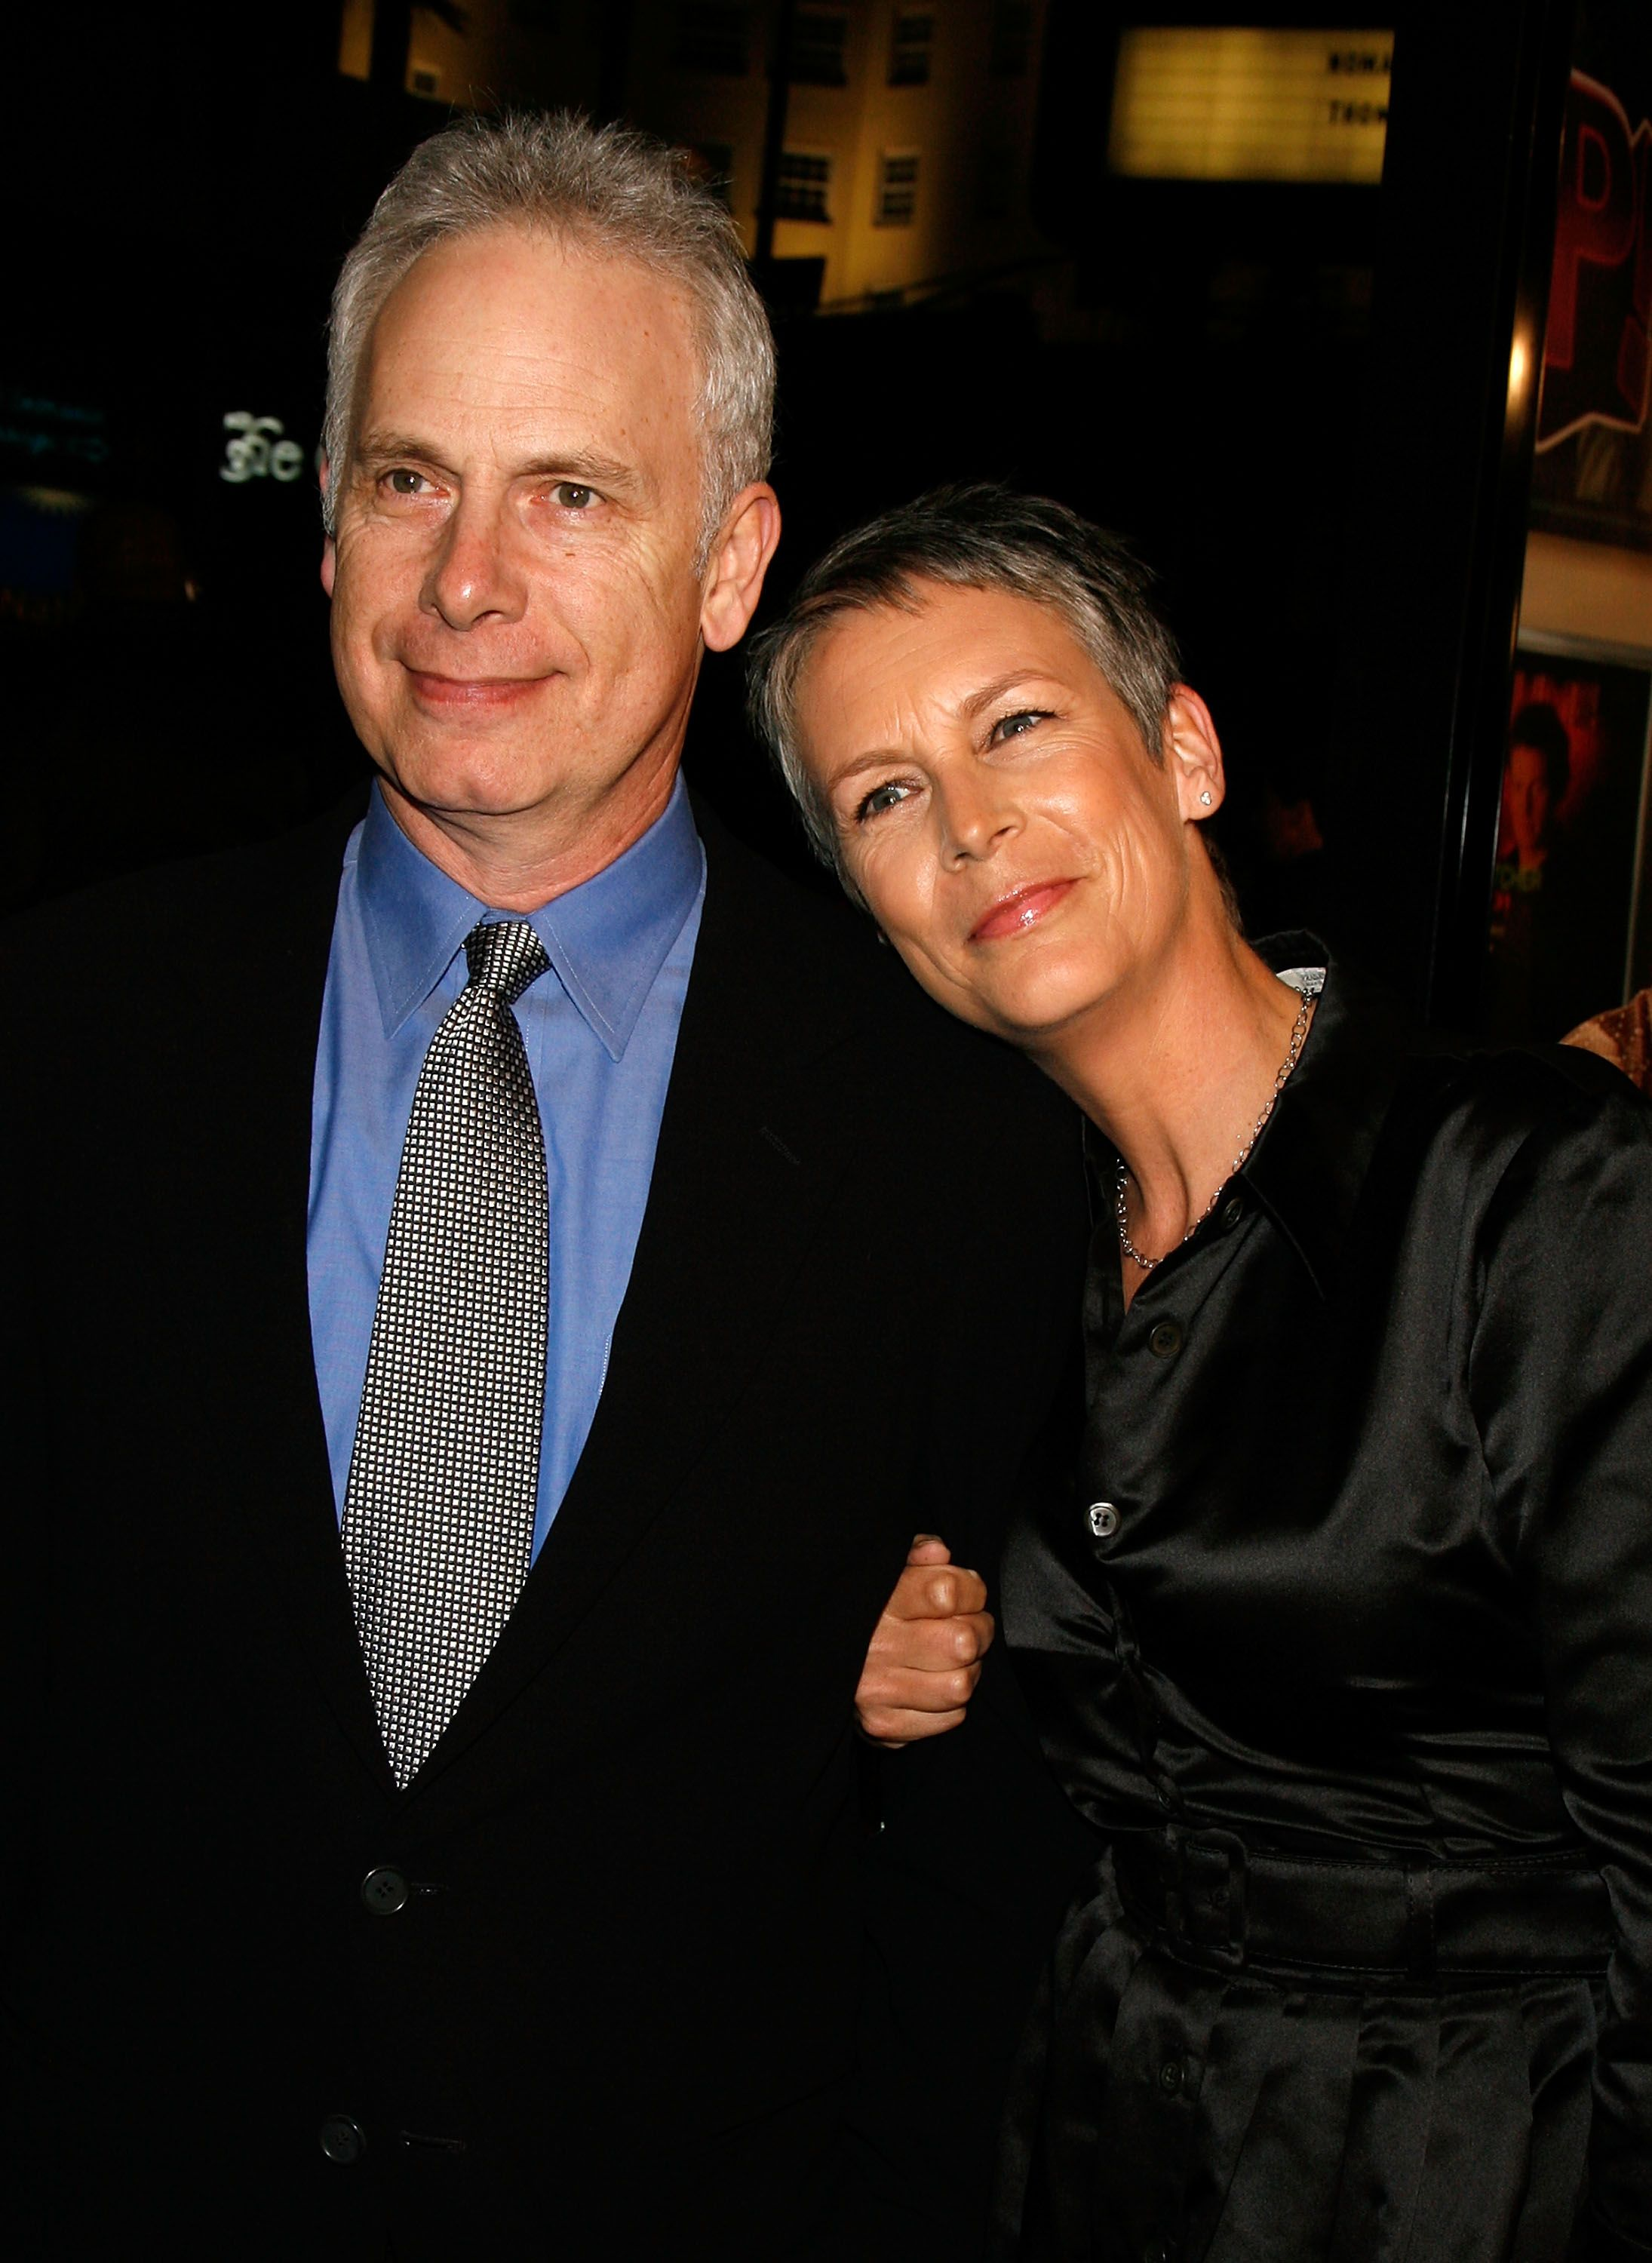 """Jamie Lee Curtis with husband Christopher Guest at the Warner Bros. premiere of """"Music and Lyrics"""" at the Grauman's Chinese Theatre in Hollywood, California   Photo: Kevin Winter/Getty Images"""